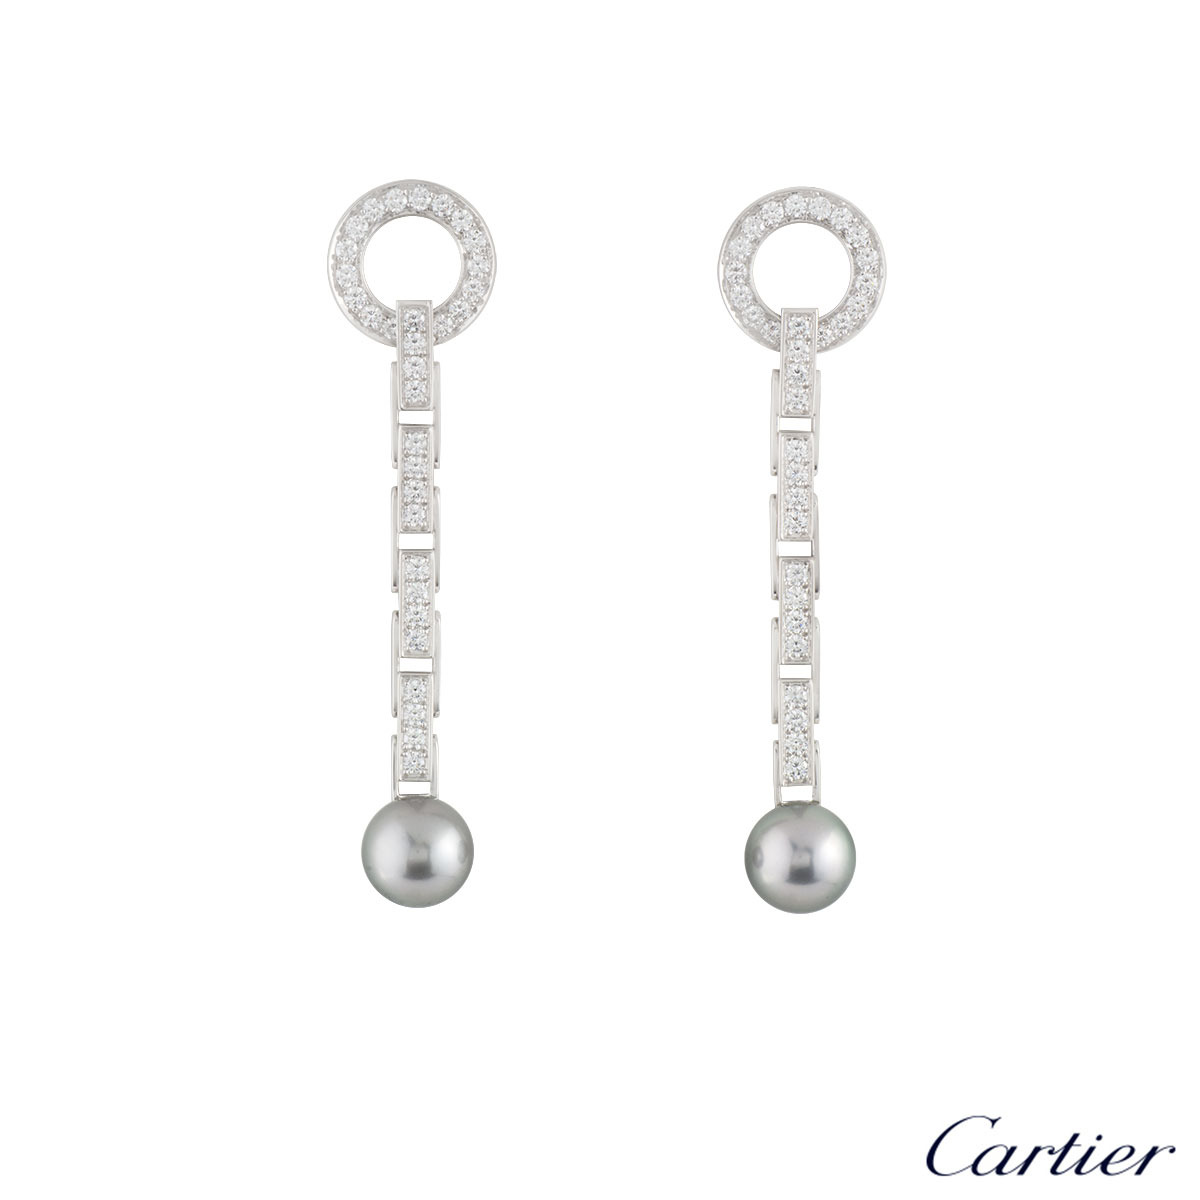 Cartier White Gold Diamond & Pearl Agrafe Earrings 1.92ct